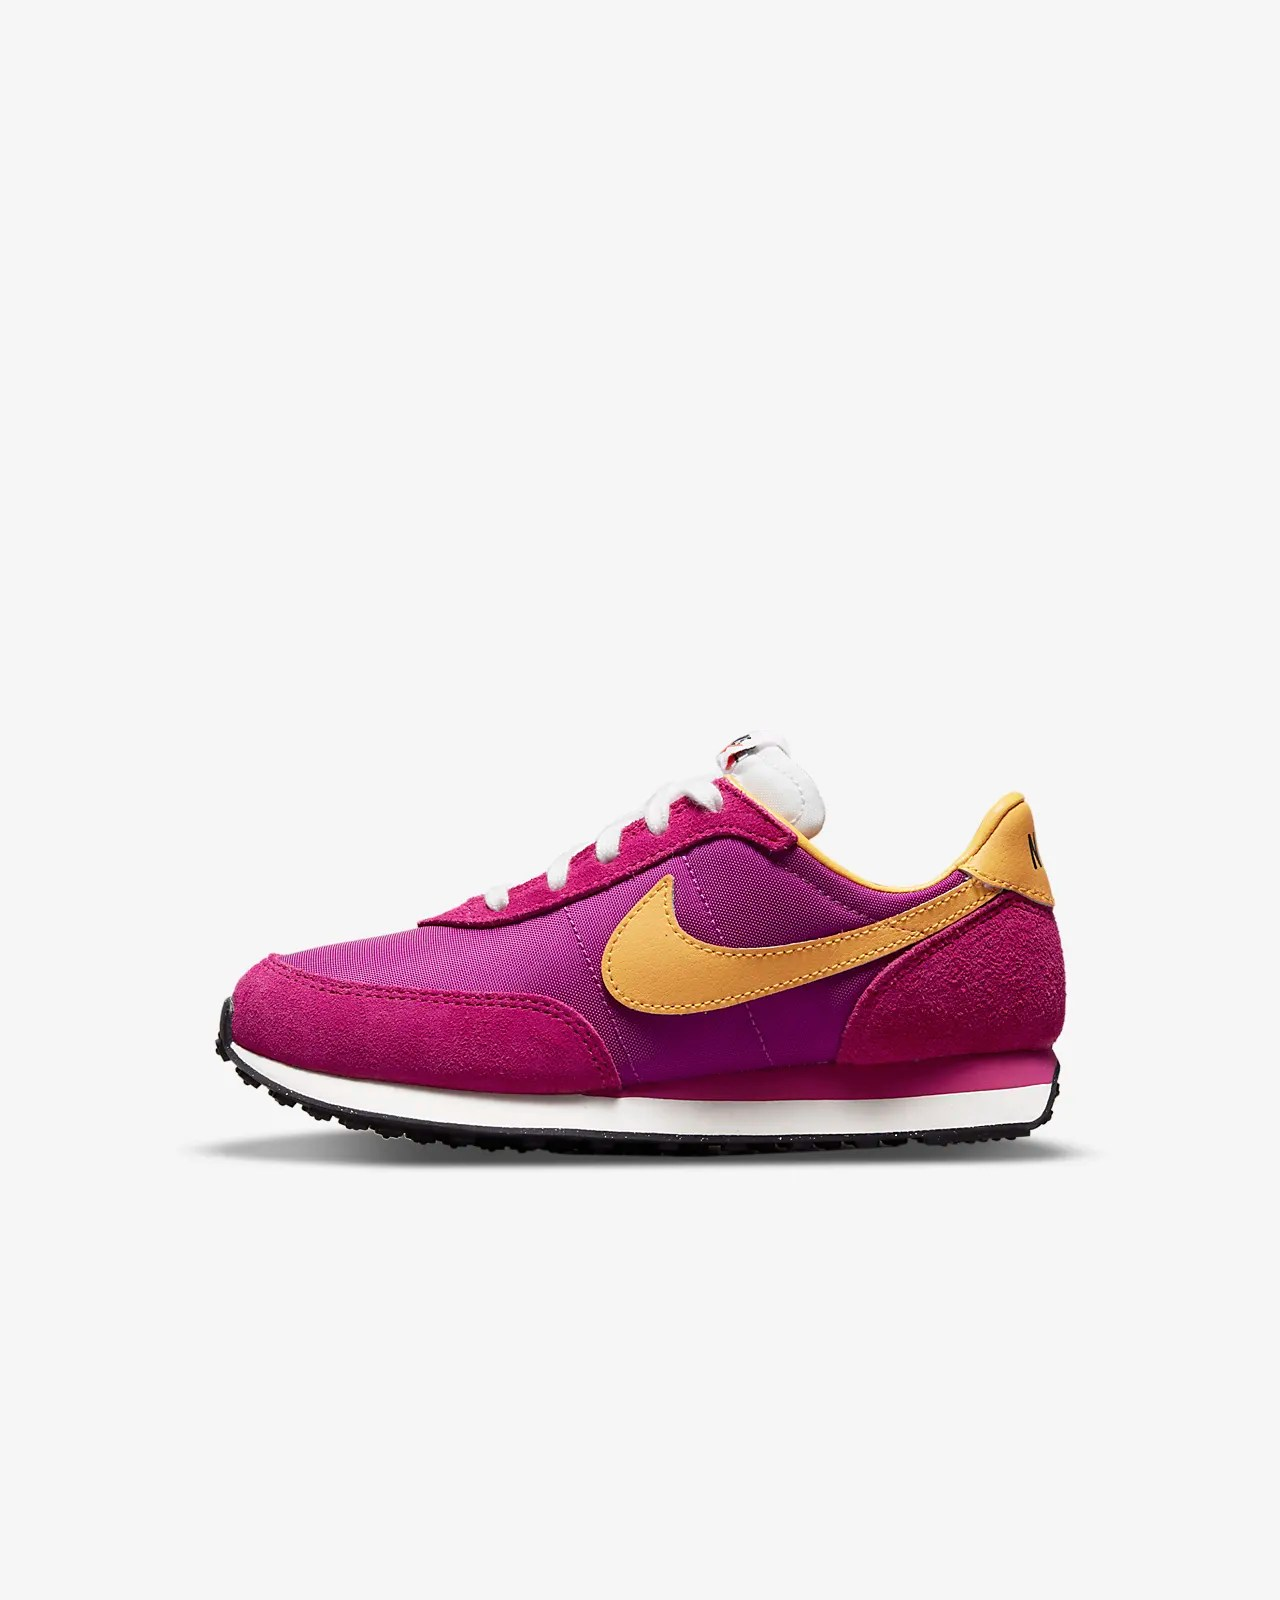 PS Nike Waffle Trainer 2 SP 'Fireberry'